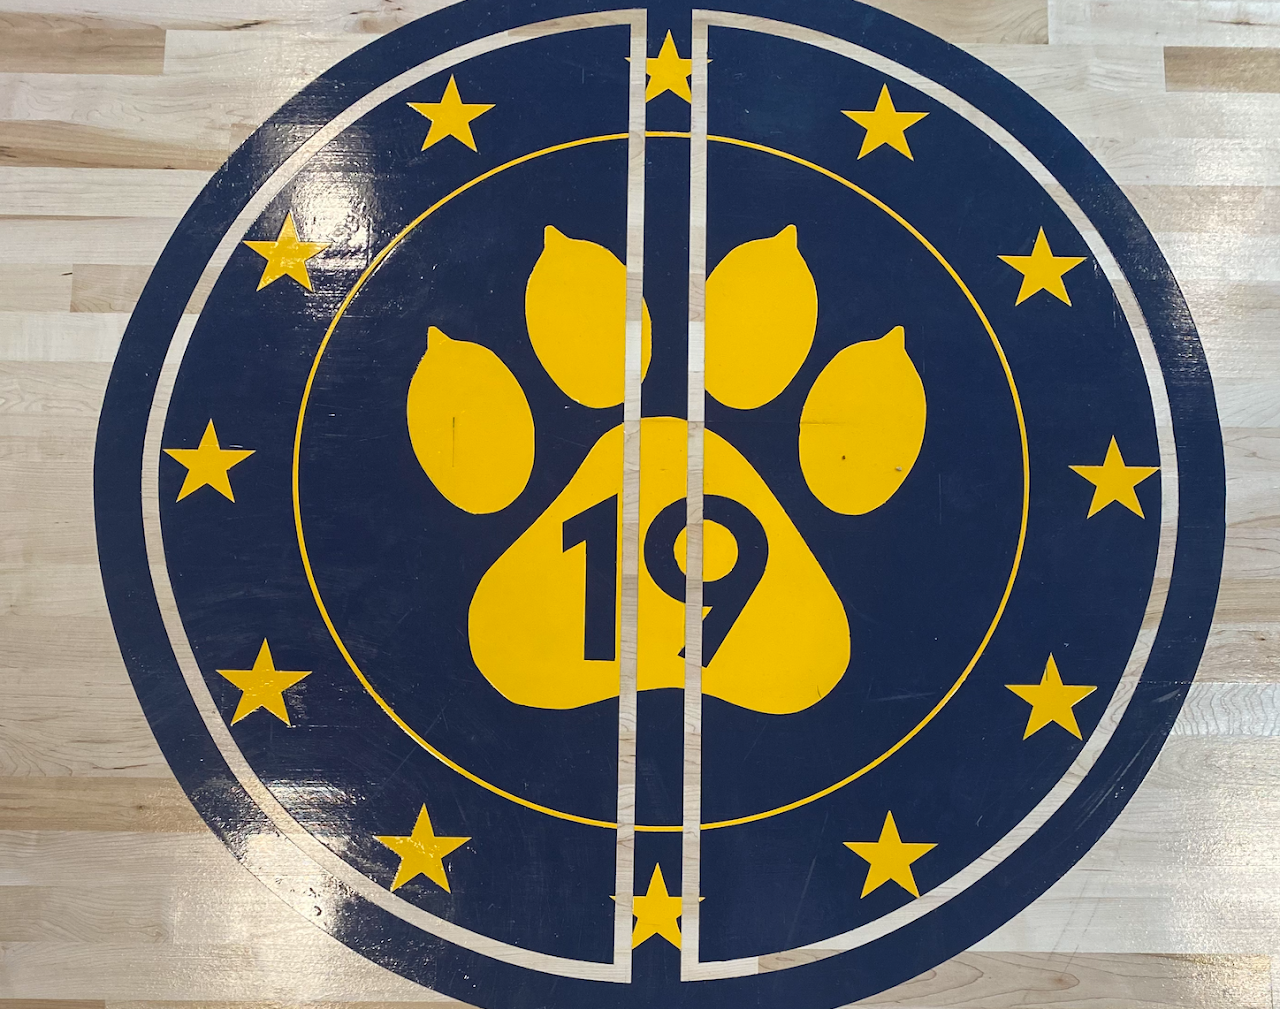 P.S. 19 blue and yellow paw logo on the gymnasium floor